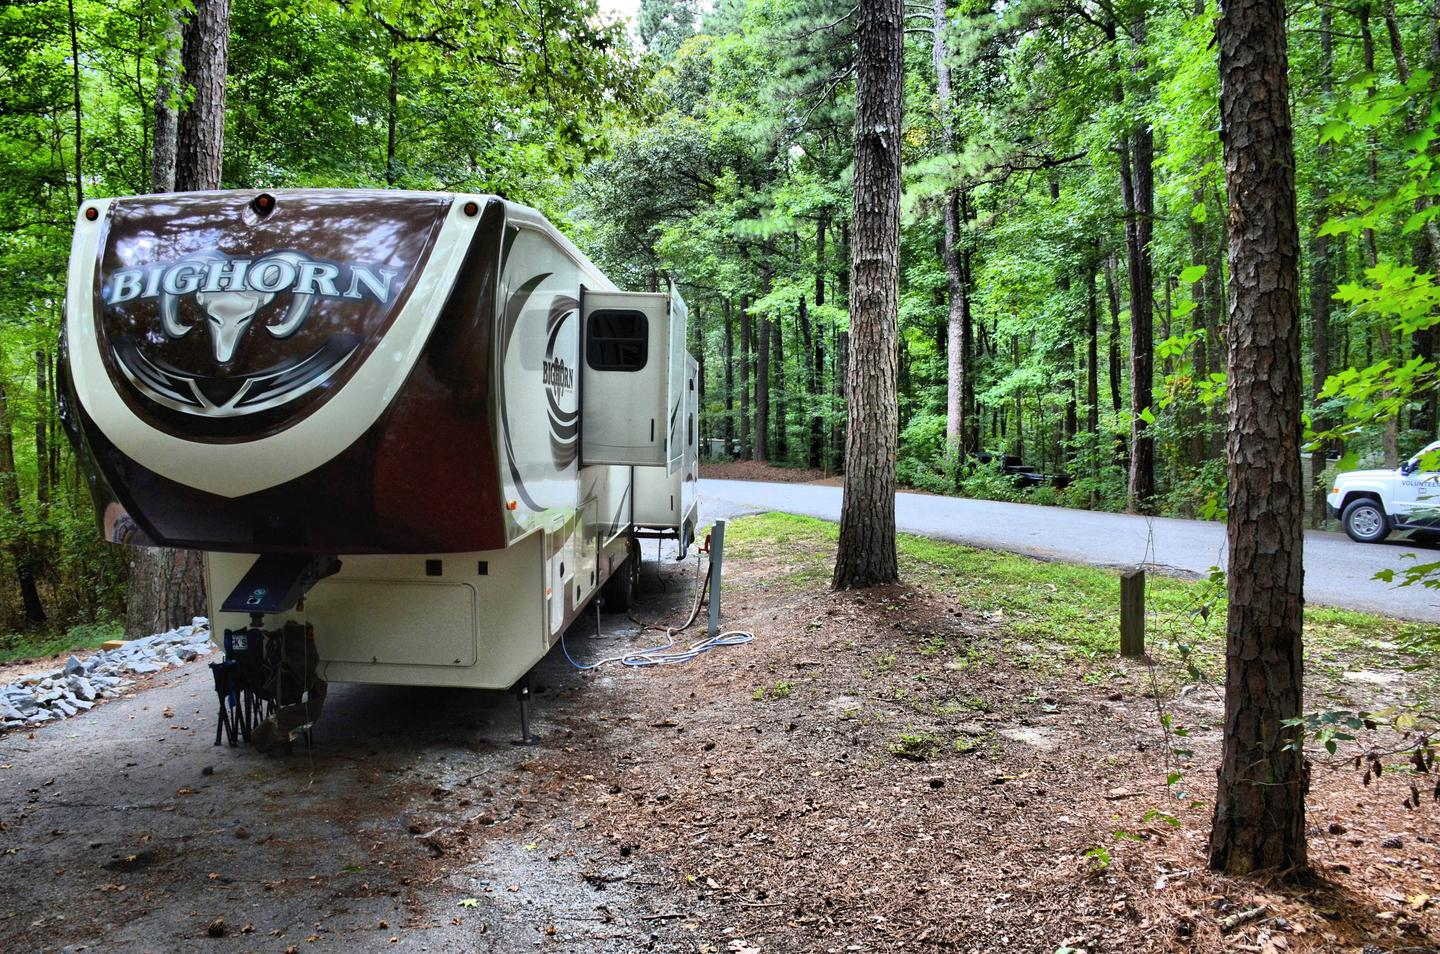 Pull-thru exit, driveway slope, utilities-side clearance.Payne Campground, campsite 39